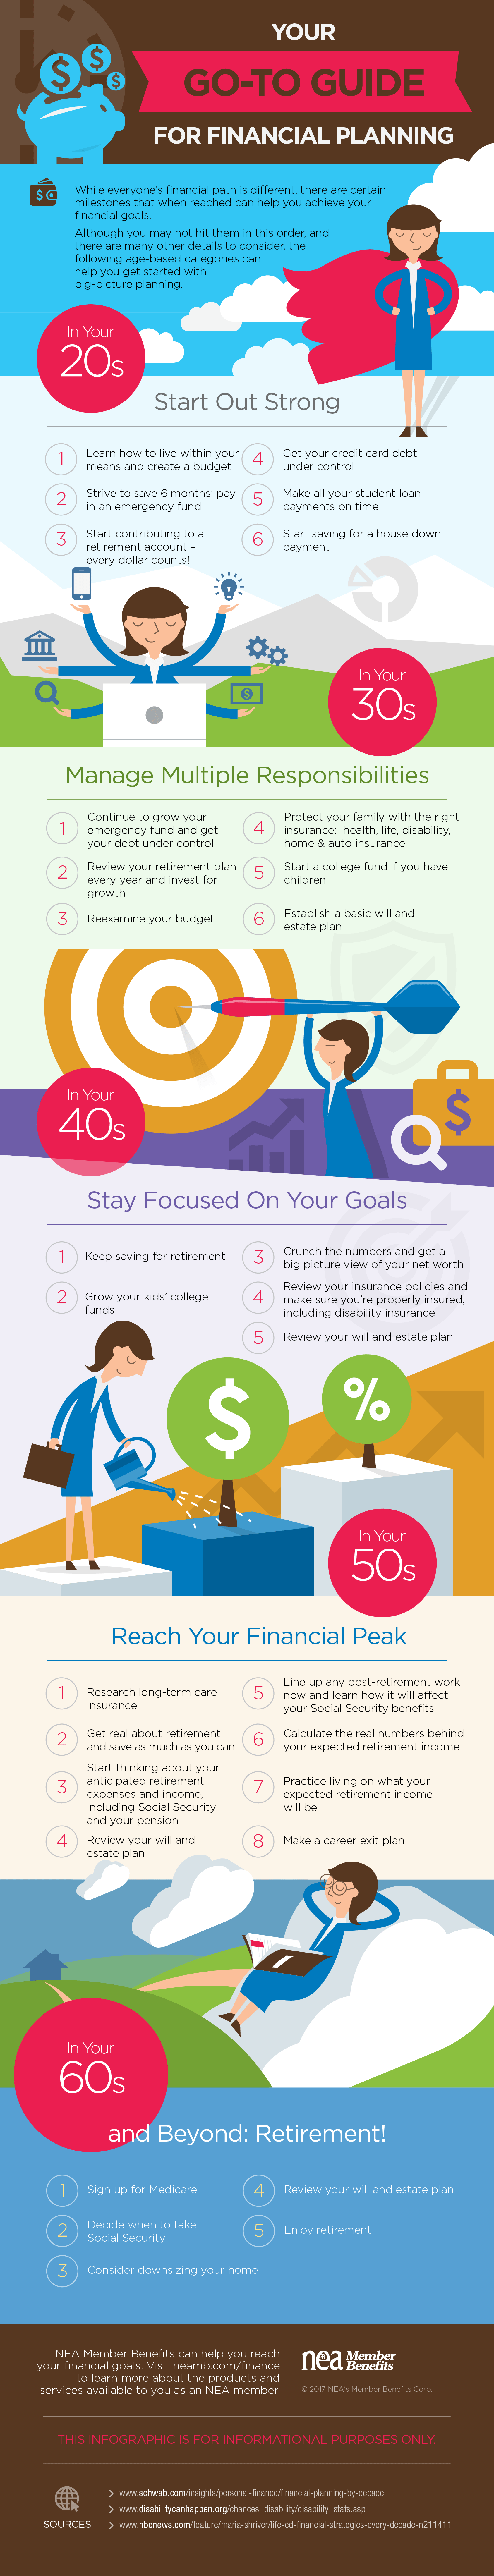 Infographic for Financial Planning